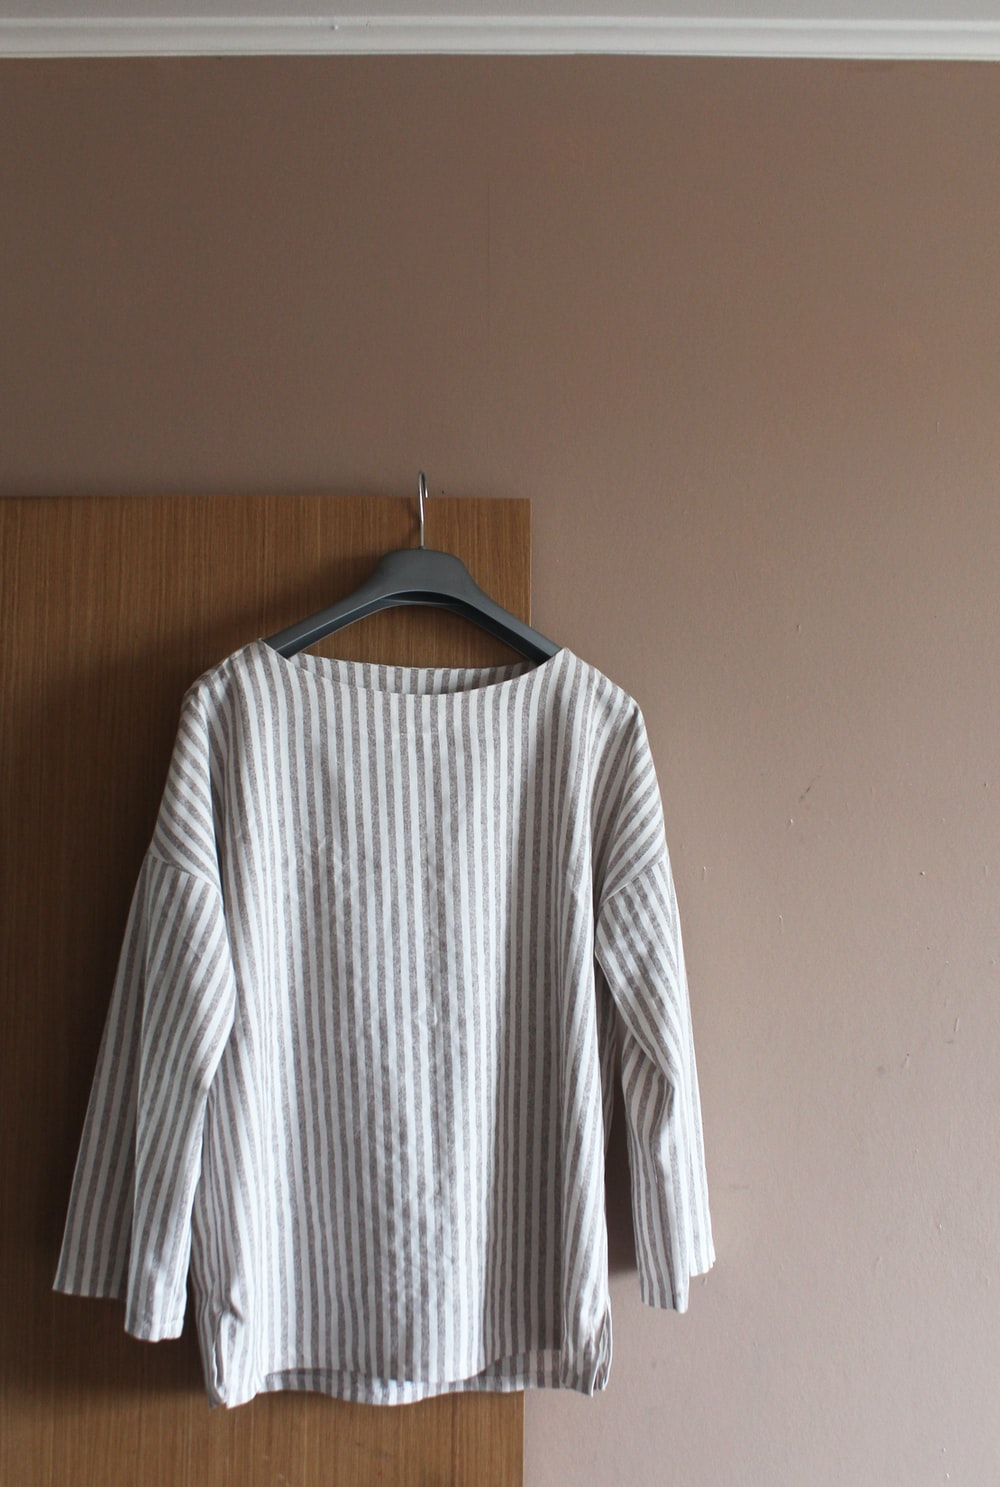 white and black striped long sleeve shirt